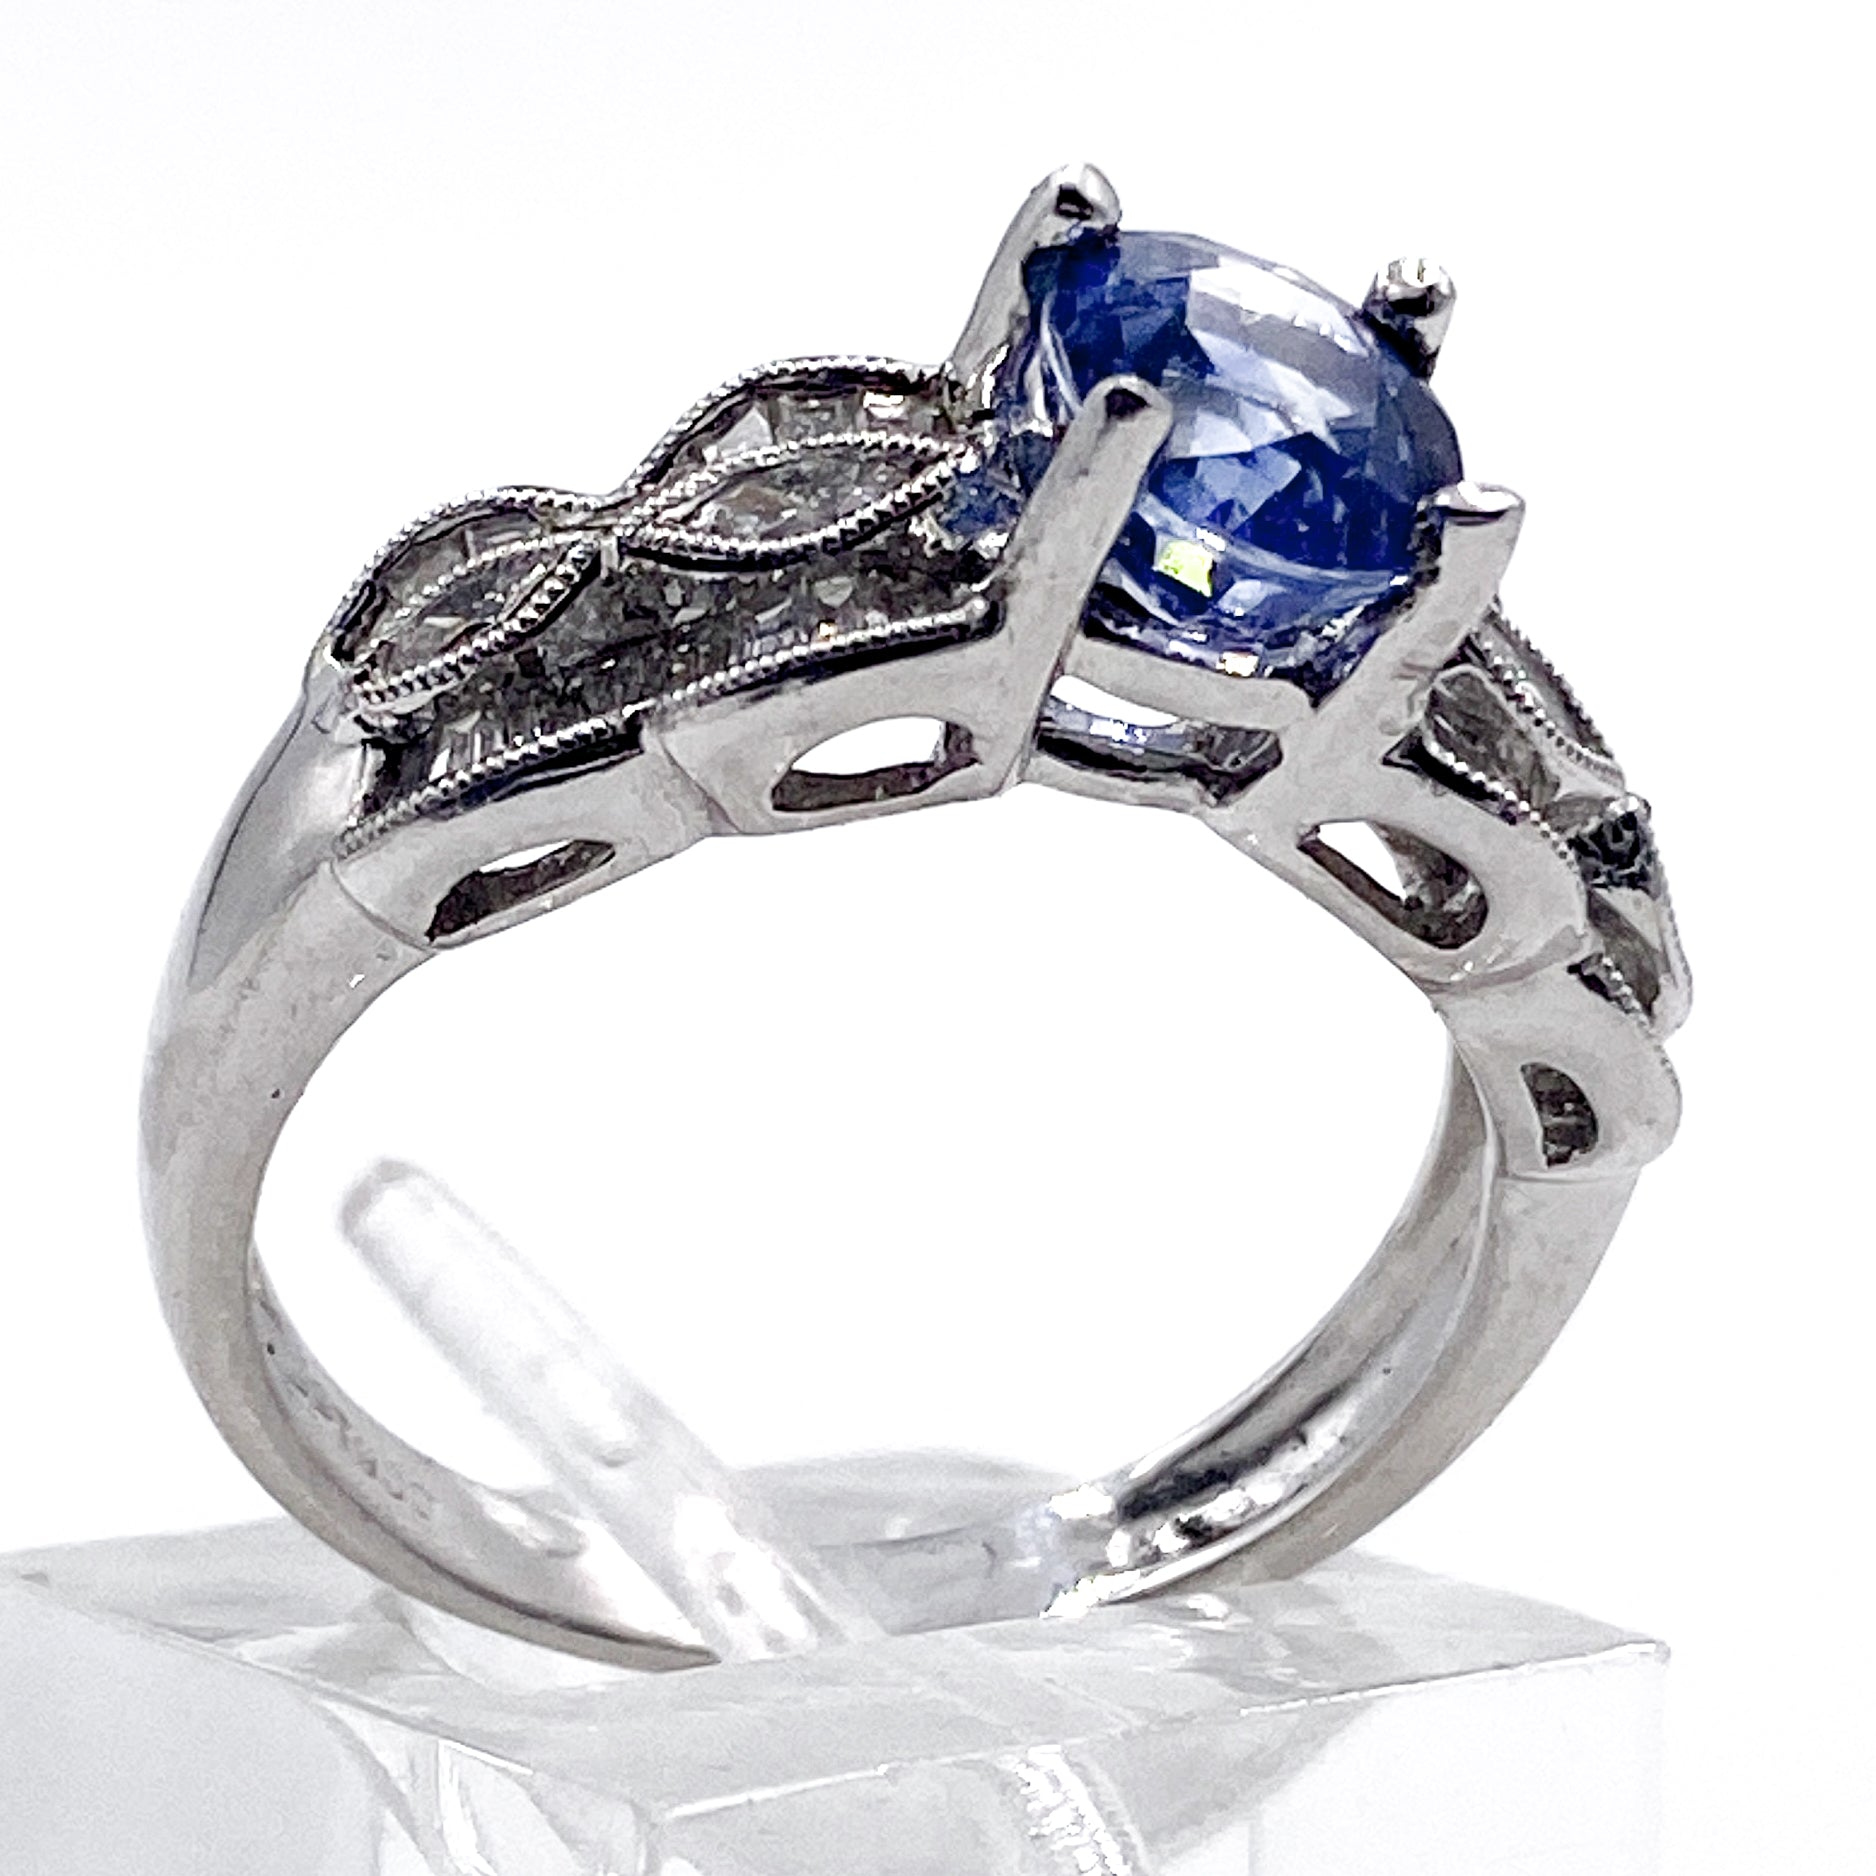 2 Carat Sapphire and Diamond Dinner Ring in Platinum